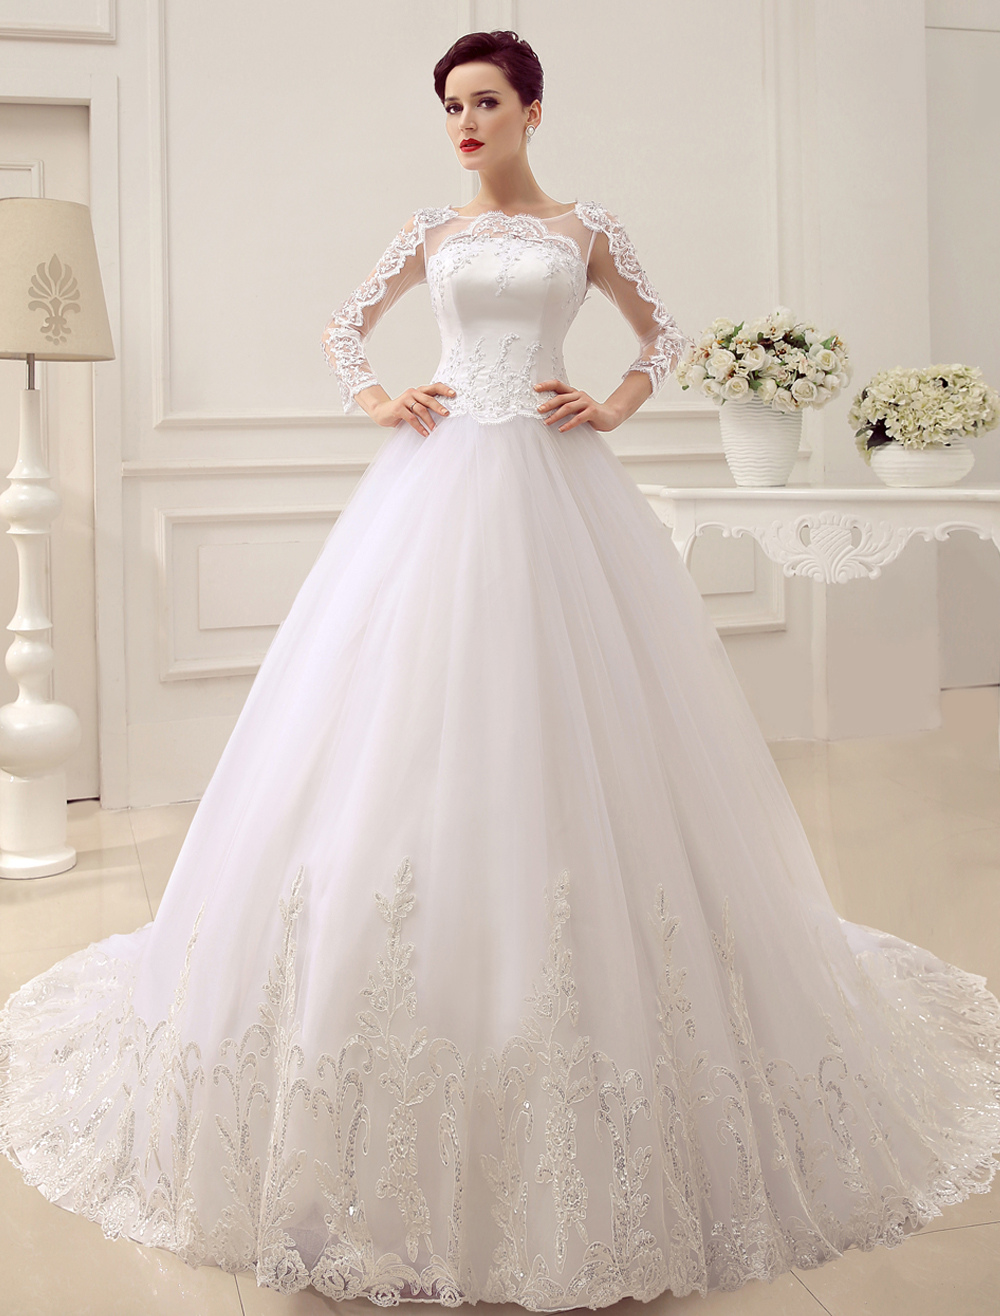 Princess Wedding Dresses Long Sleeve Bridal Gown Lace Applique Sequin Beaded Illusion Ball Gown Bridal Dress With Train Milanoo